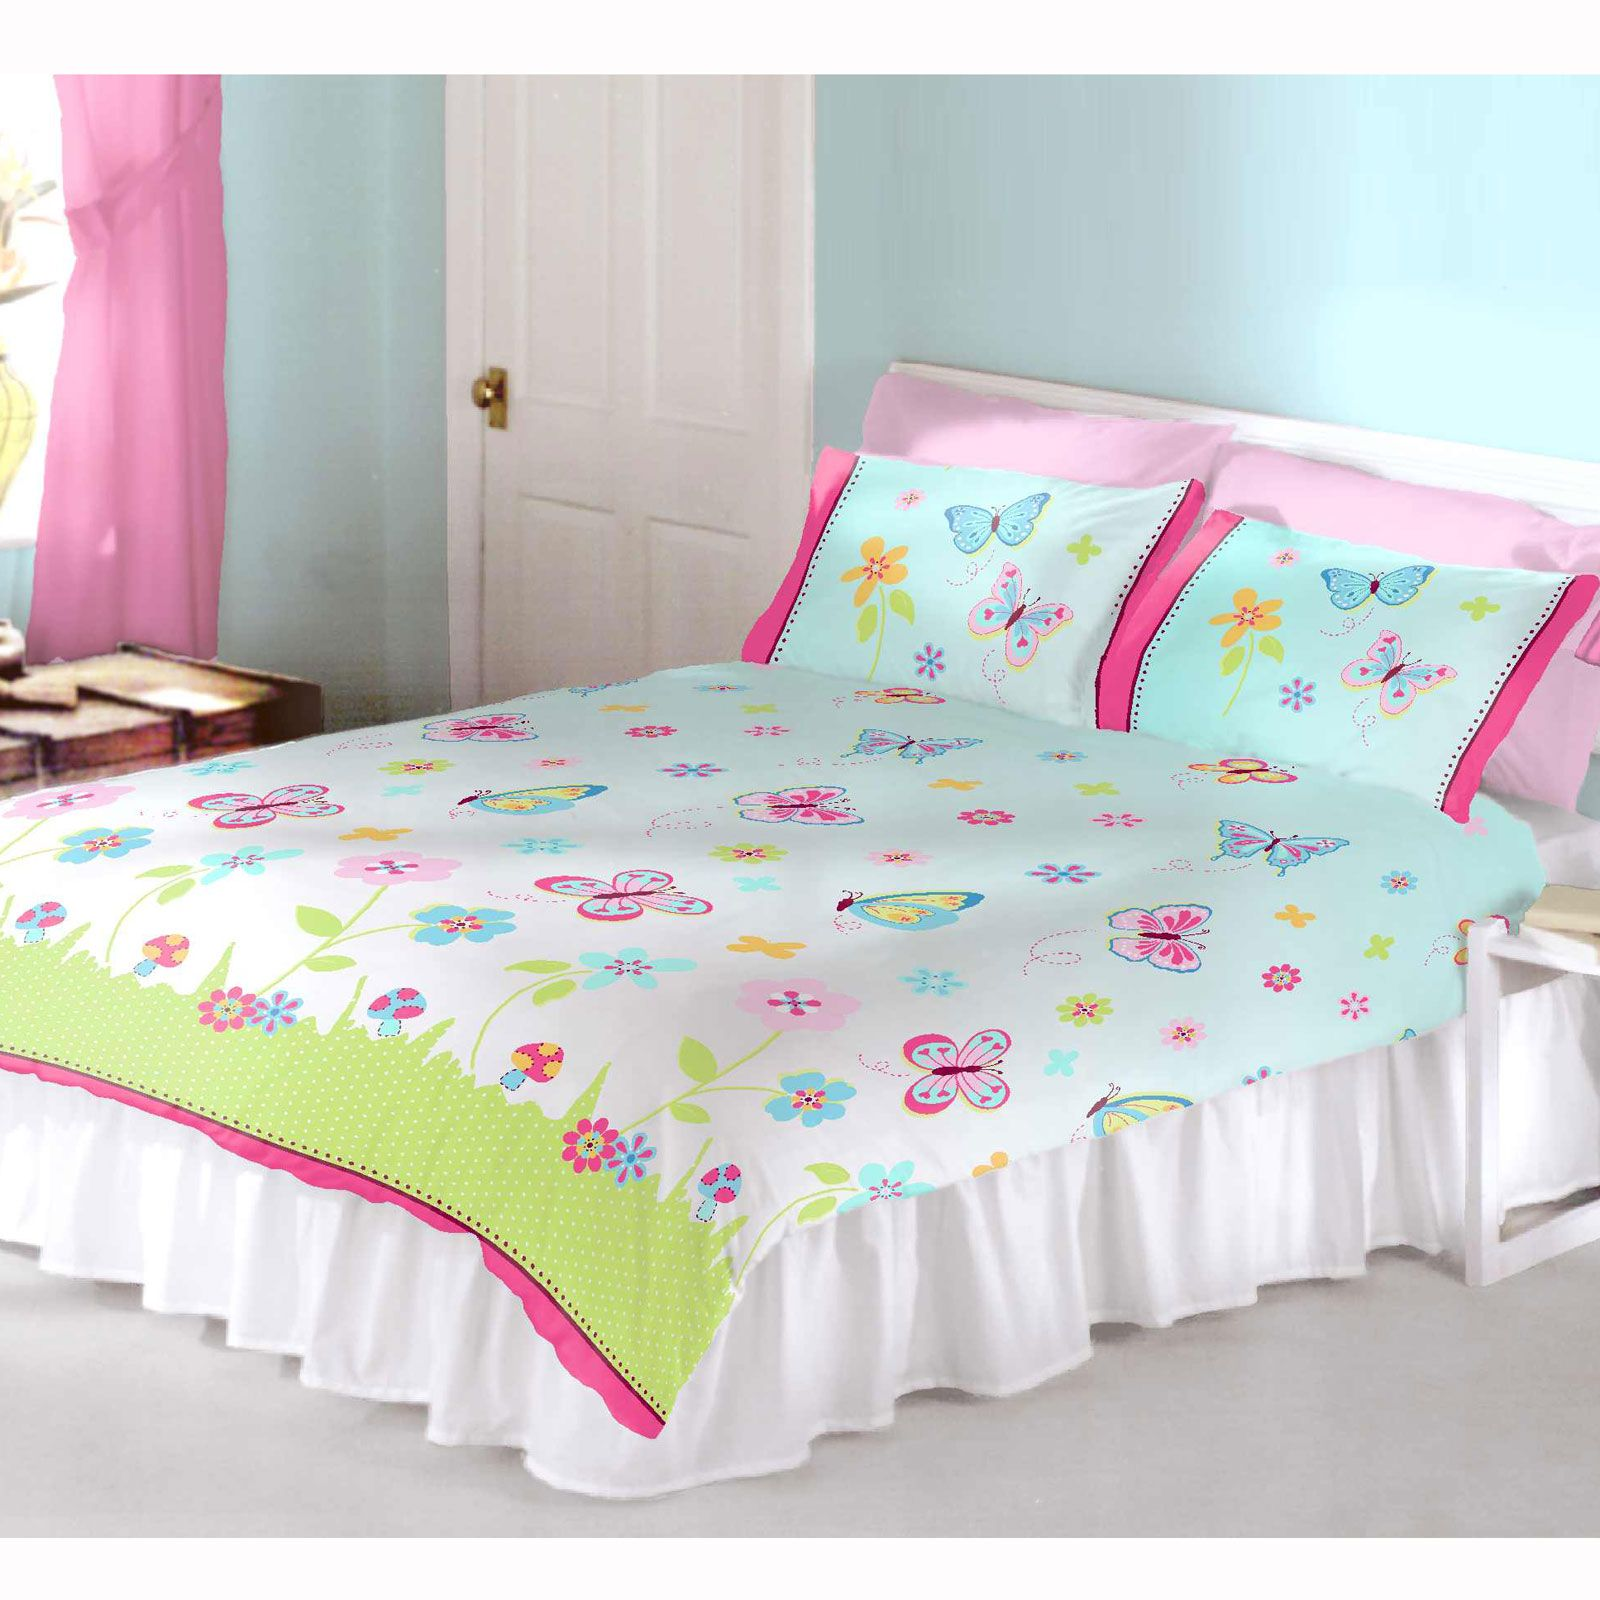 Girls Bedding Single And Double Polycotton Duvet Covers